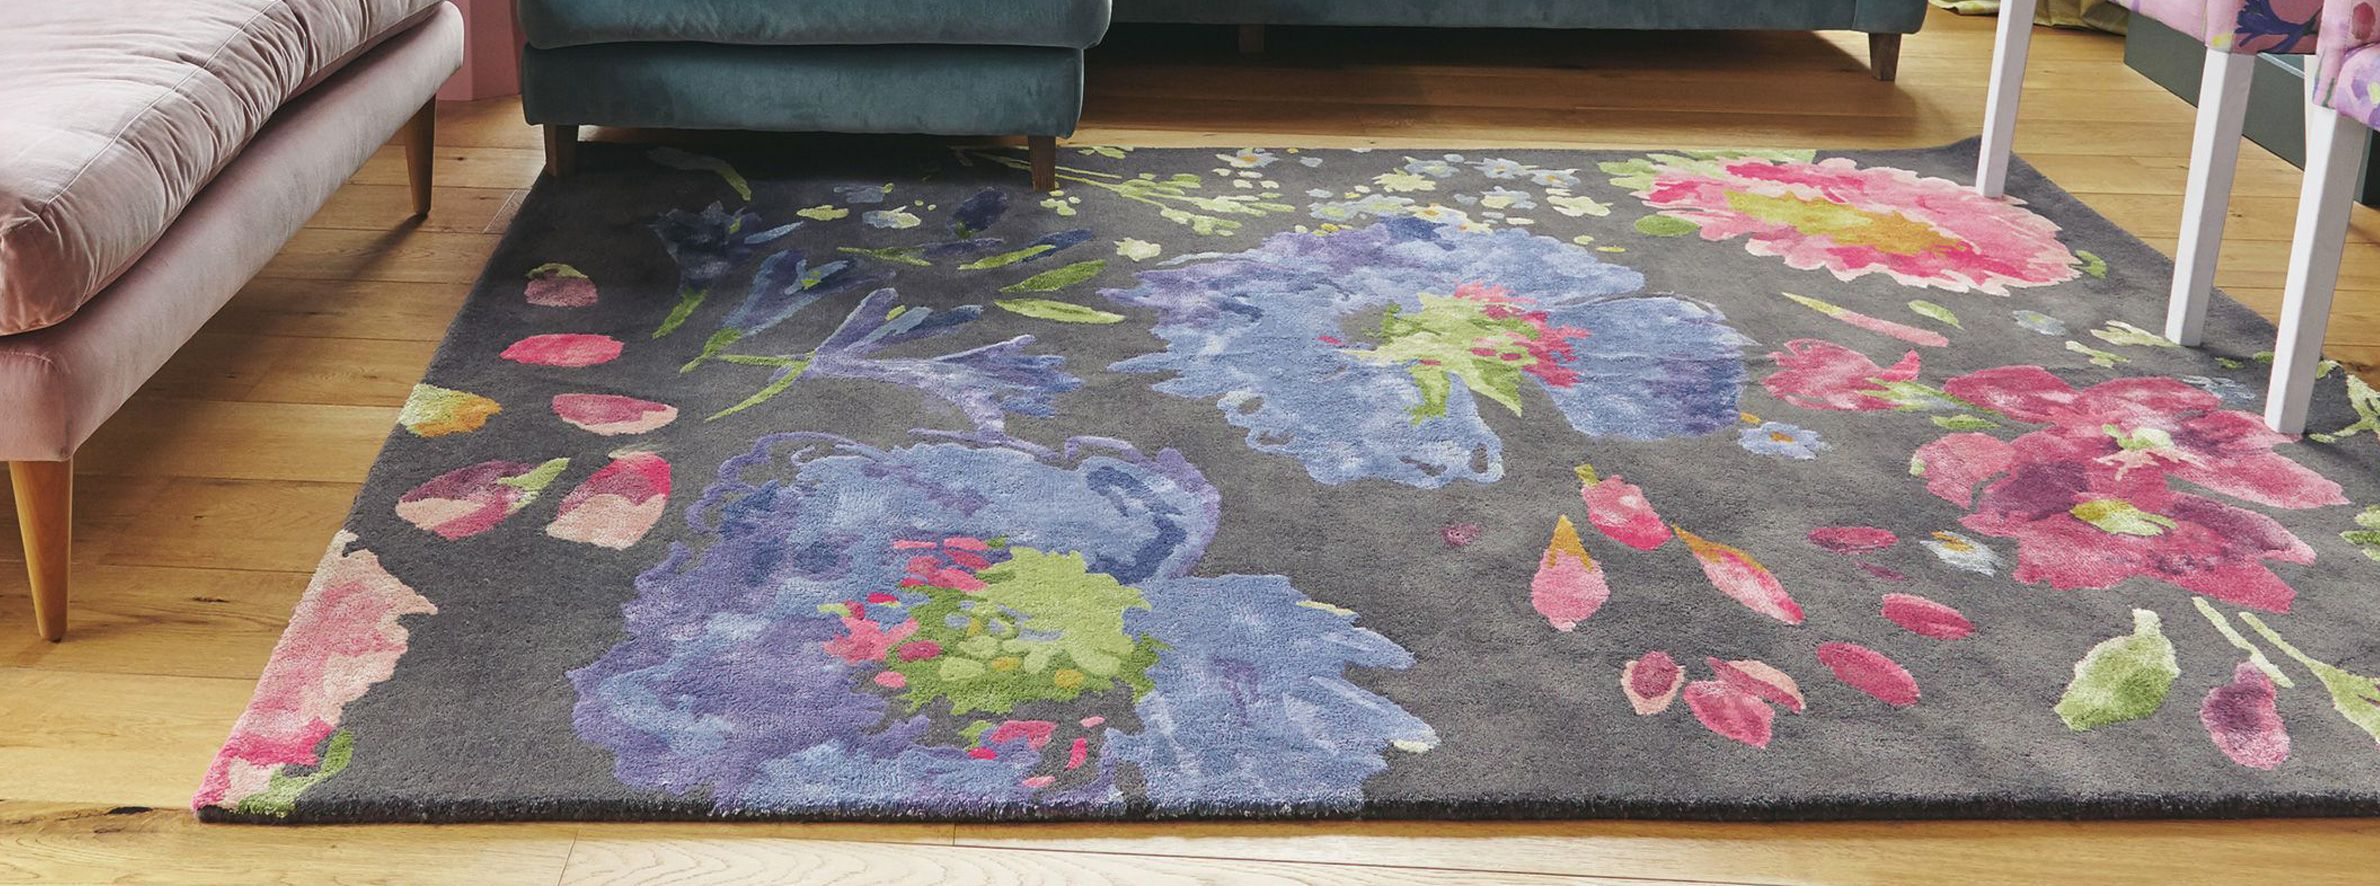 area ca ryhill rose pink wayfair rug rugs pinkpale floral pale pdp bright bungalow